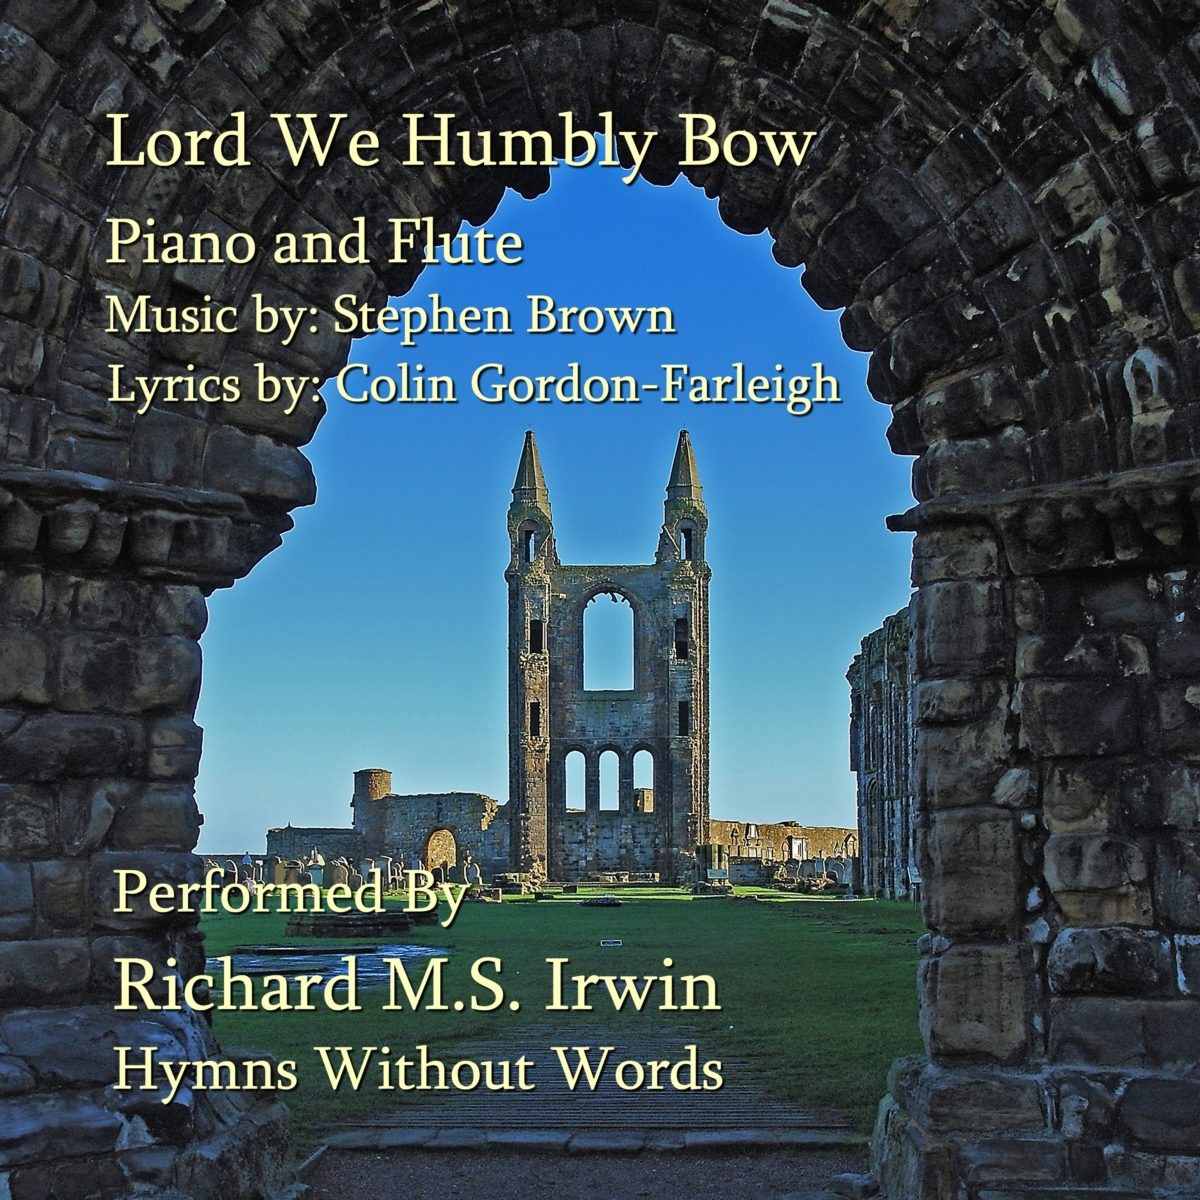 Lord We Humbly Bow (Piano And Flute, 3 Verses)